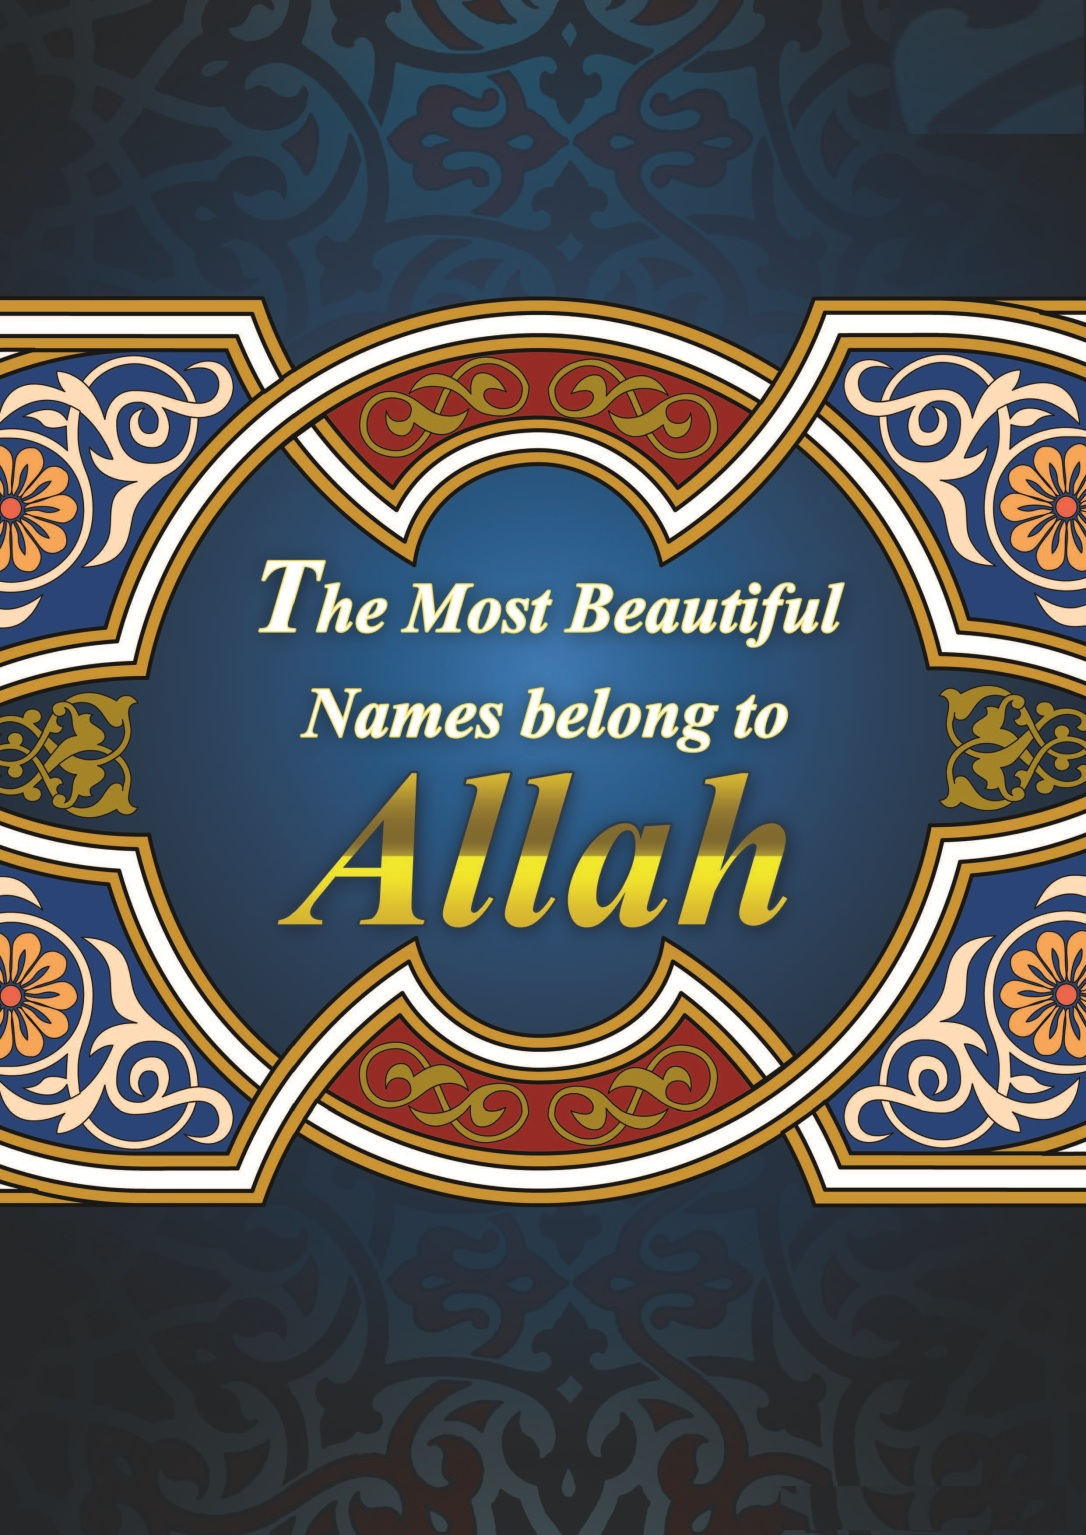 TheMostBeautifulNamesBelongToAllah_Page_01